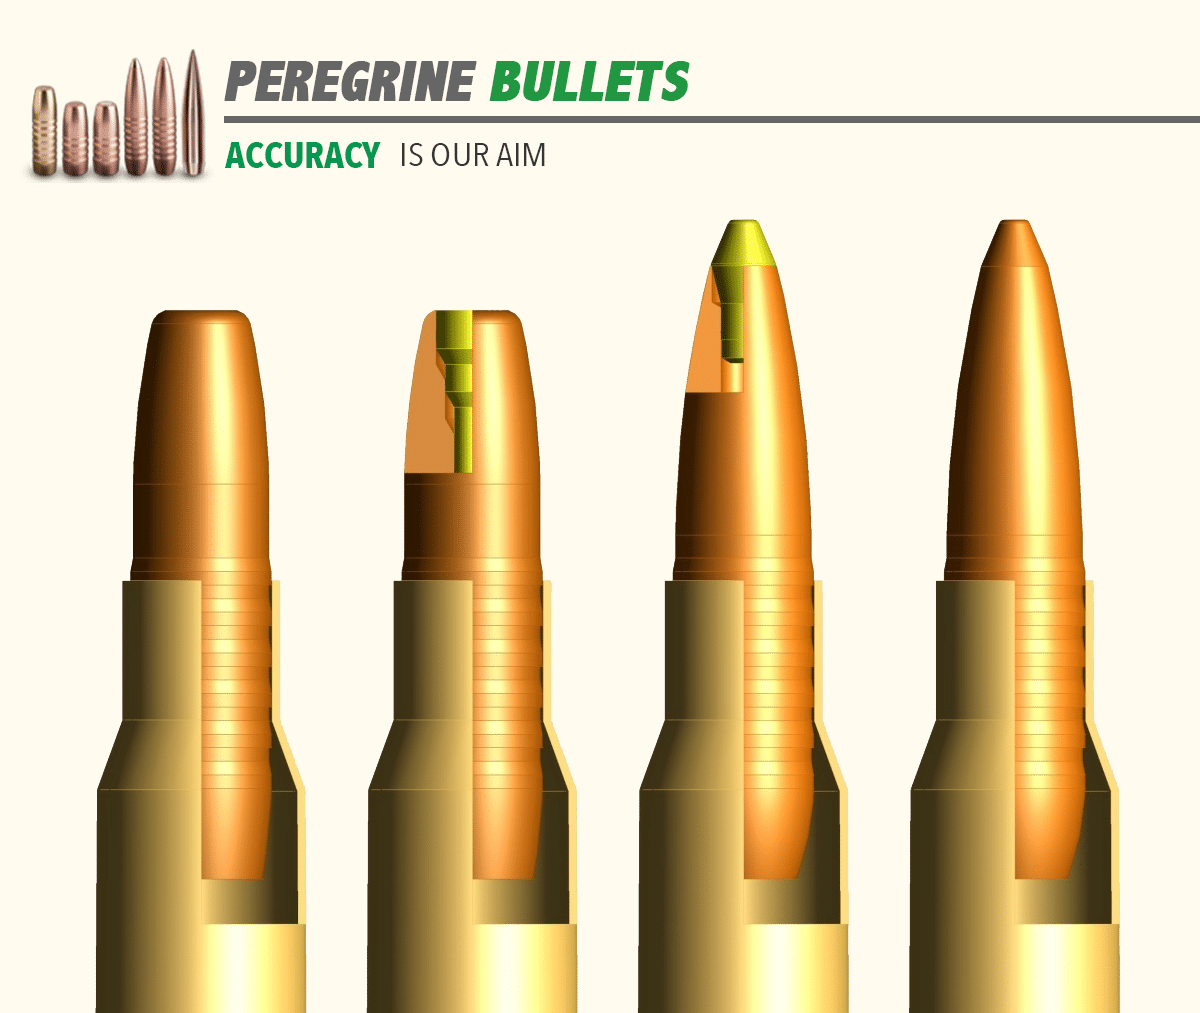 How to correctly seat peregrine bullets